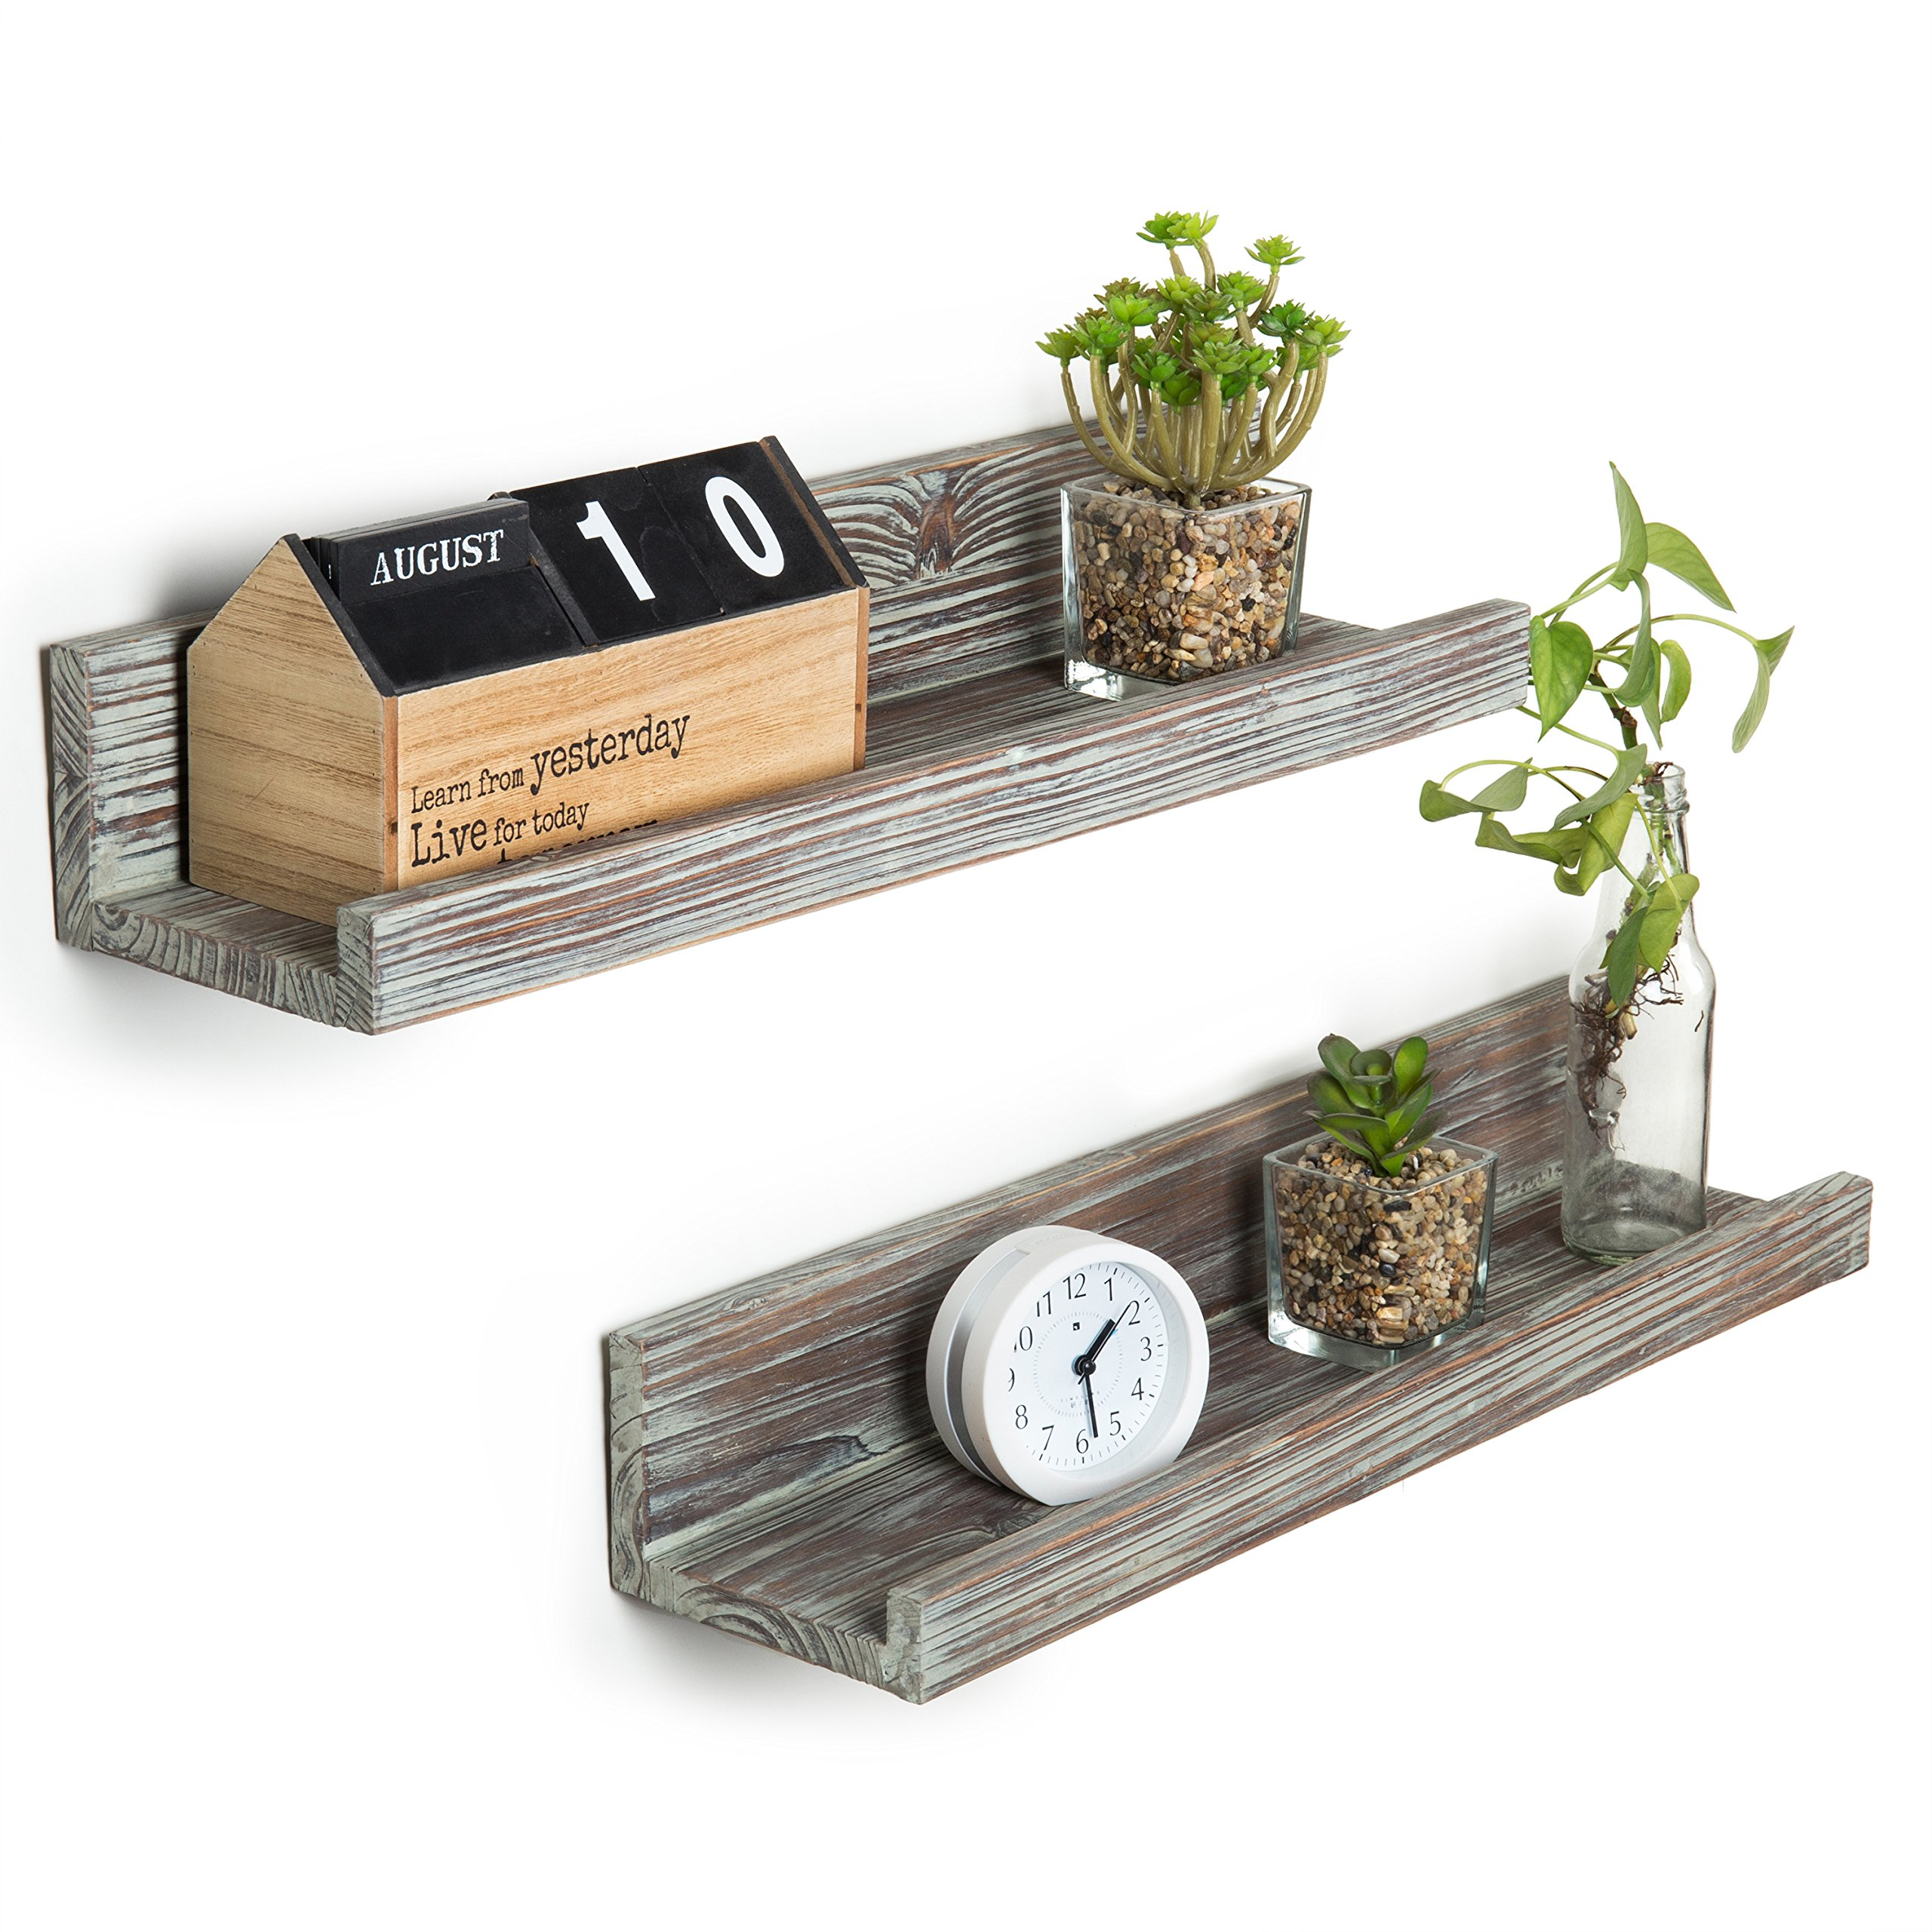 MyGift Rustic Torched Wood Floating Display Shelves, Picture Ledge Shelf Set of 2